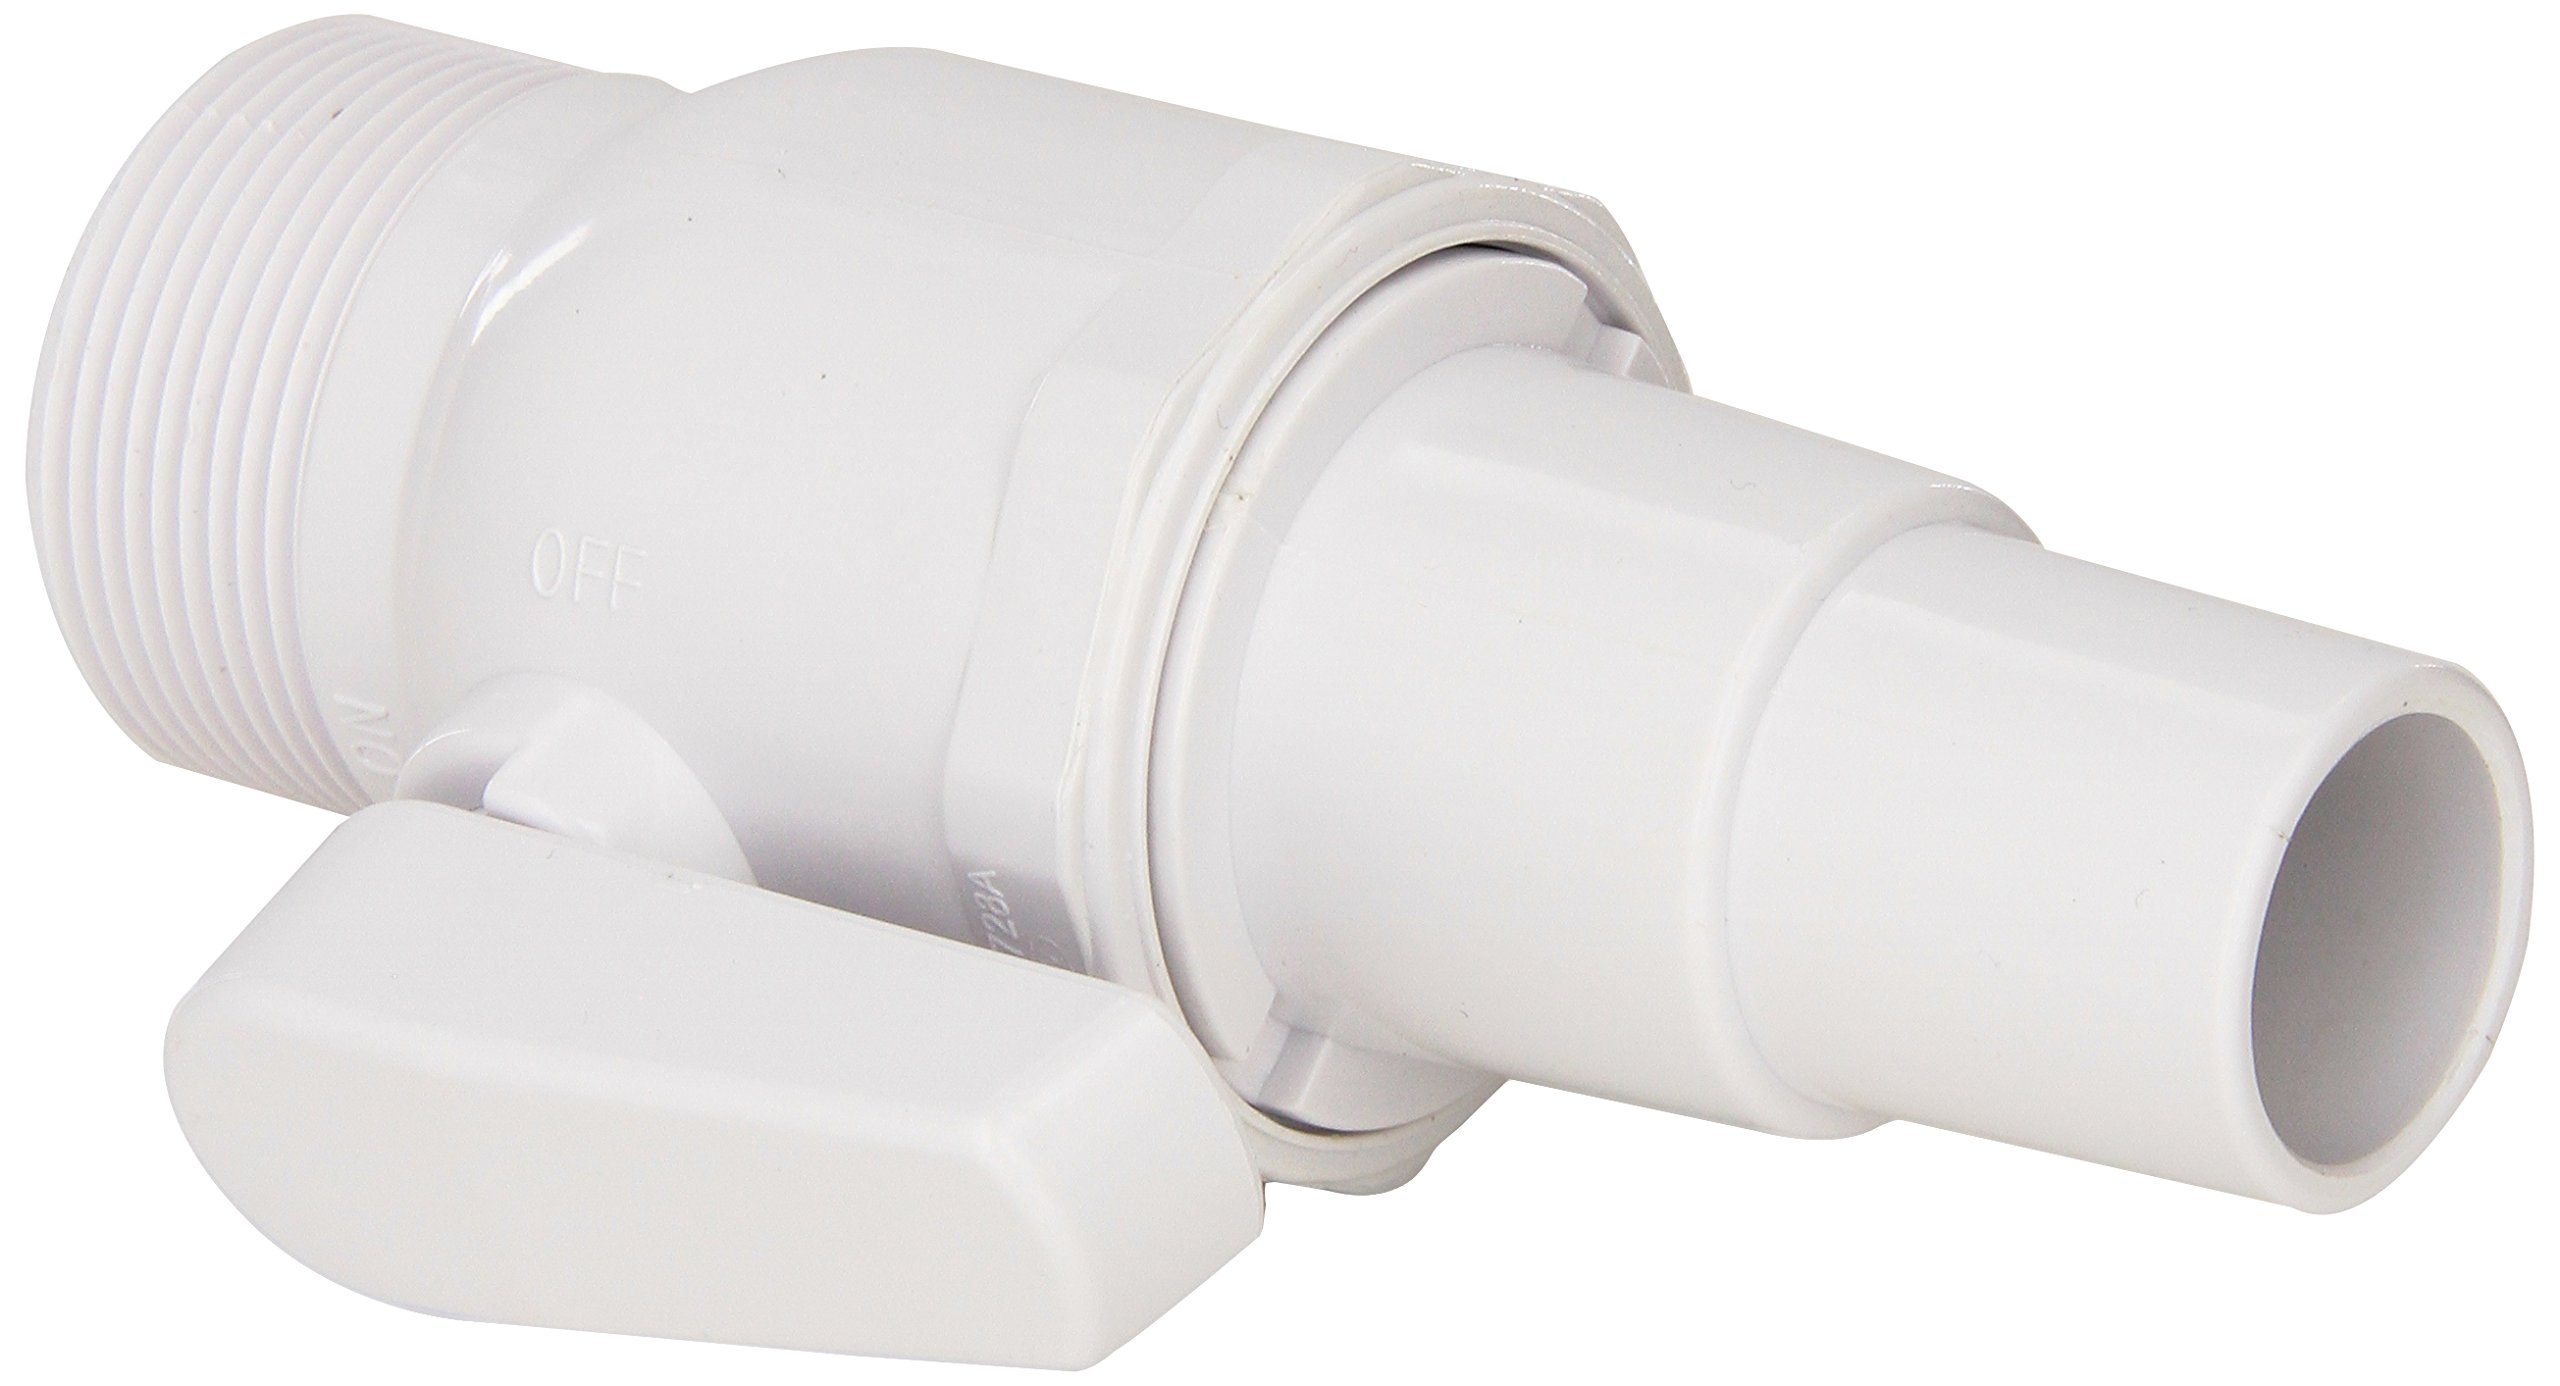 Hayward SP0729 Econoline 2-Way Ball Valve